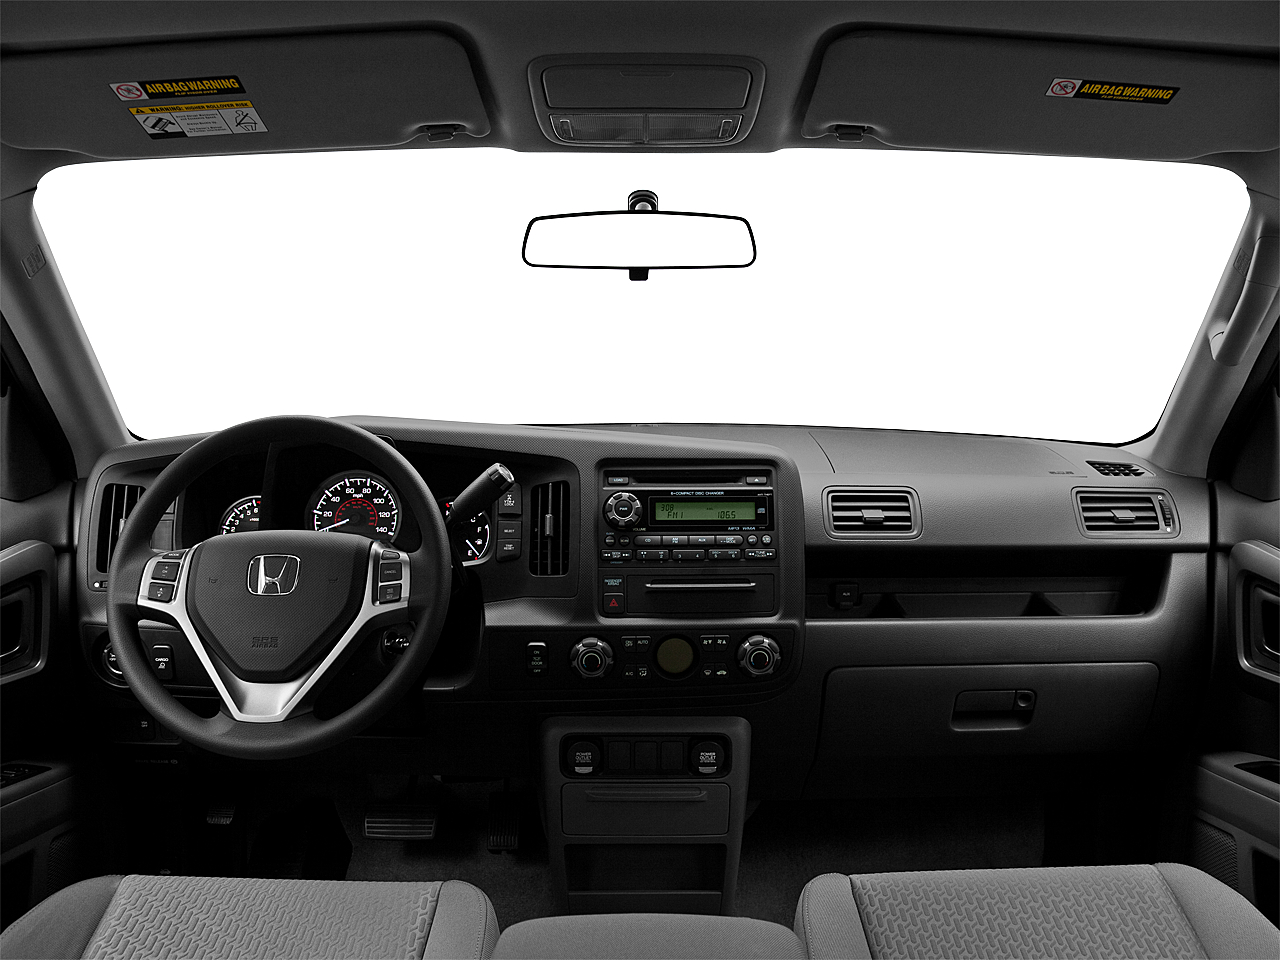 2011 Honda Ridgeline RTS, centered wide dash shot